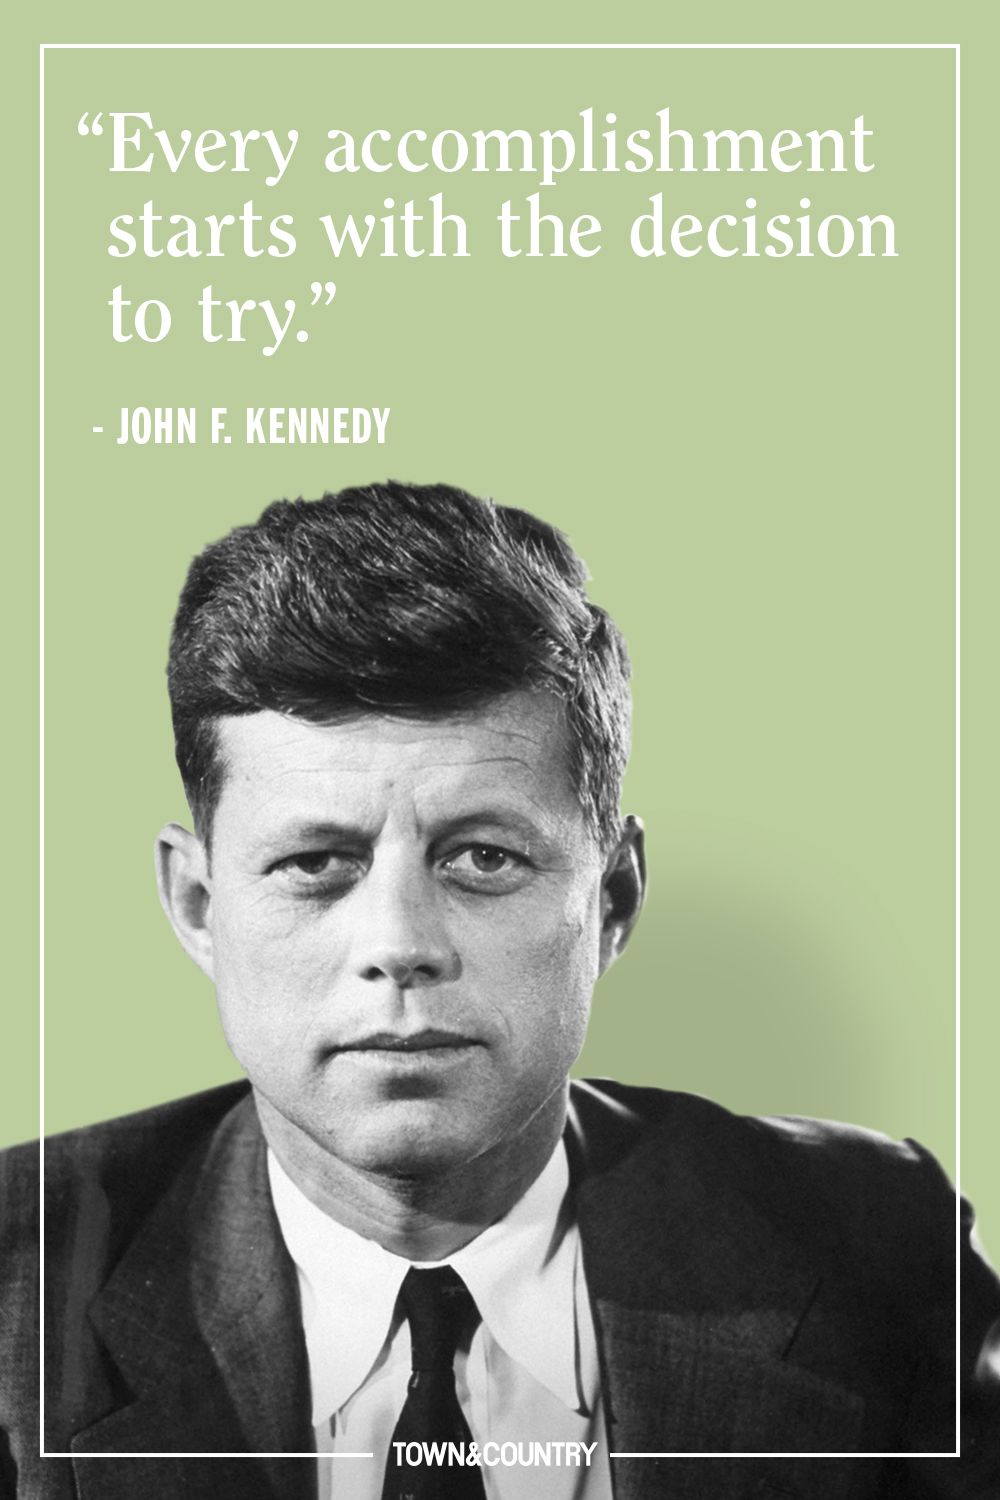 Image of: Jfk Jfk Quotes Town Country Magazine 12 Best Jfk Quotes Of All Time Famous John F Kennedy Quotes